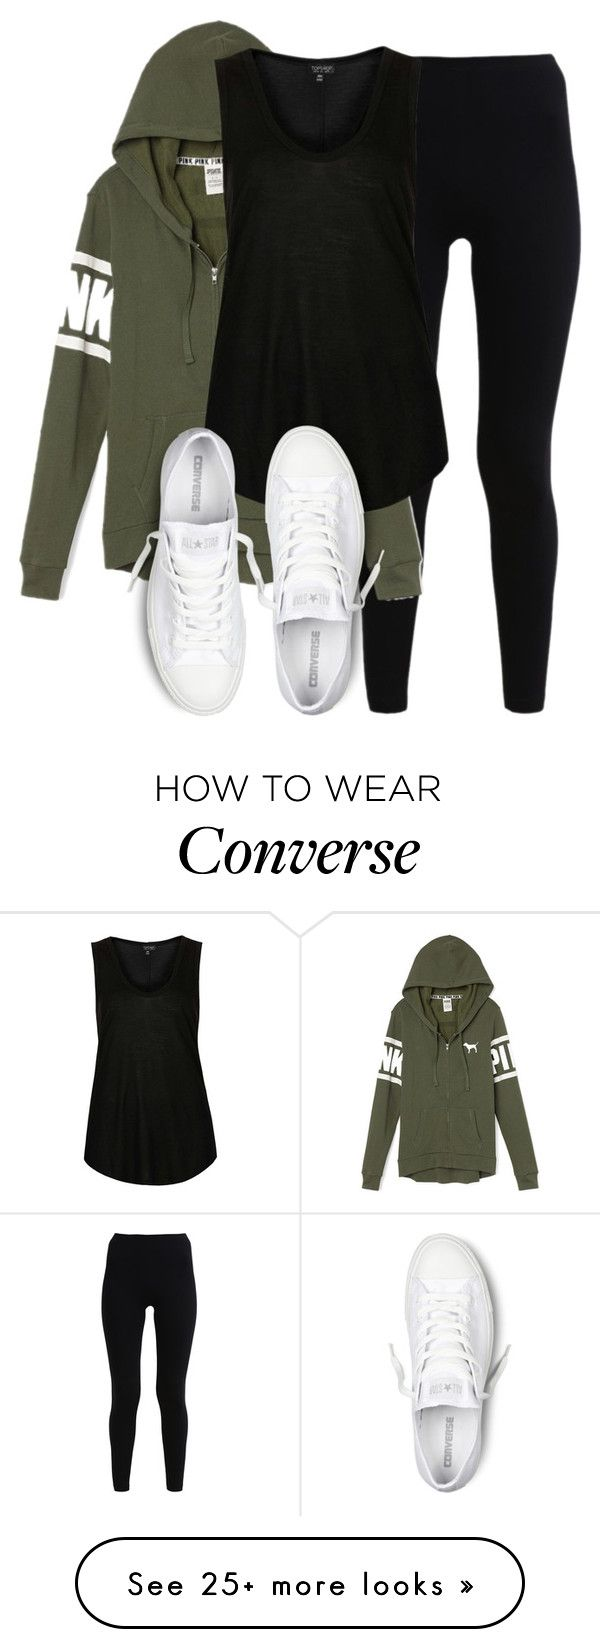 """perrie insp"" by littlemixmakeup on Polyvore featuring American Apparel, Victoria's Secret, Topshop and Co"